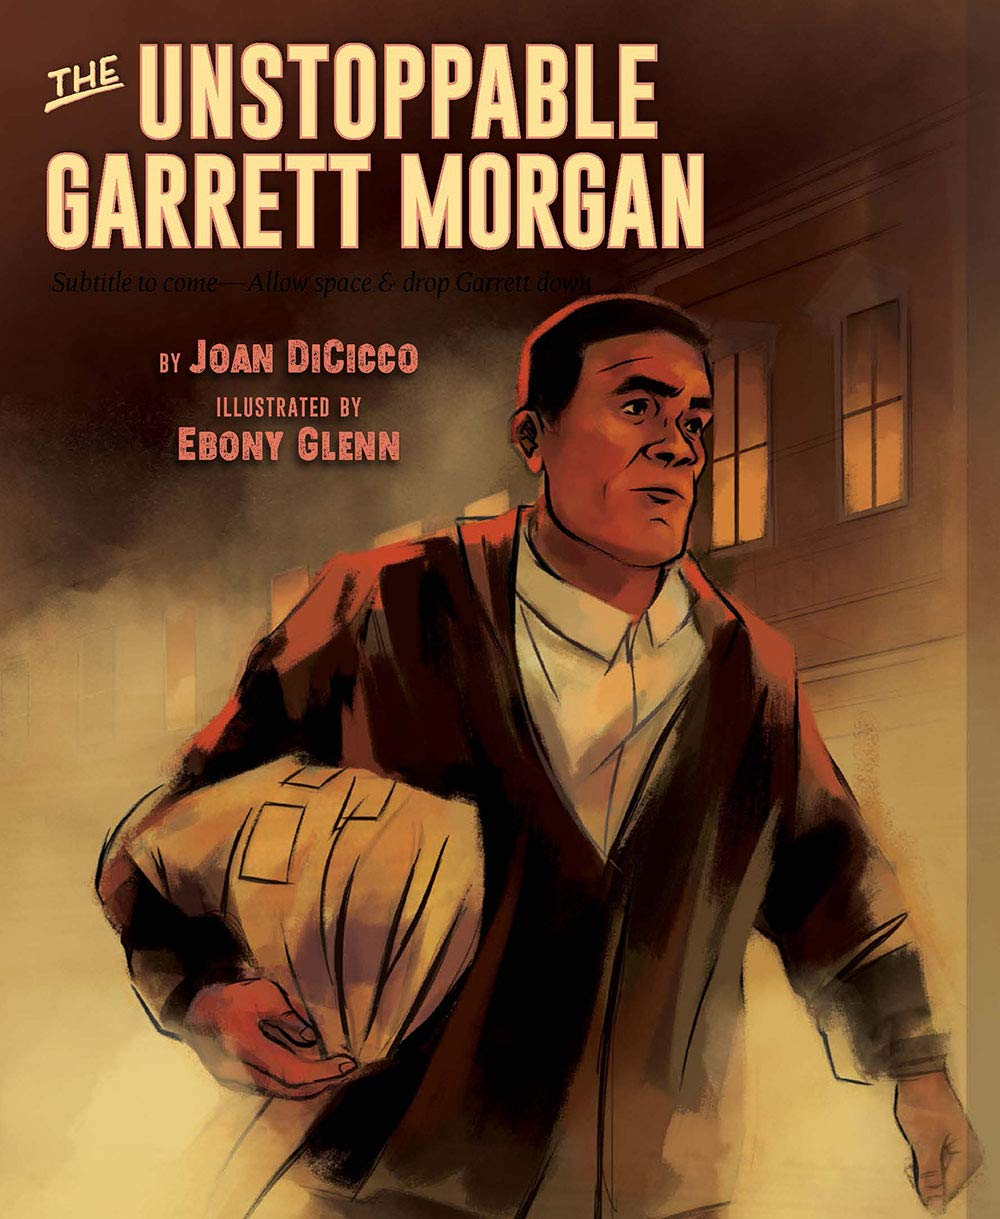 The Unstoppable Garrett Morgan Opens in new window